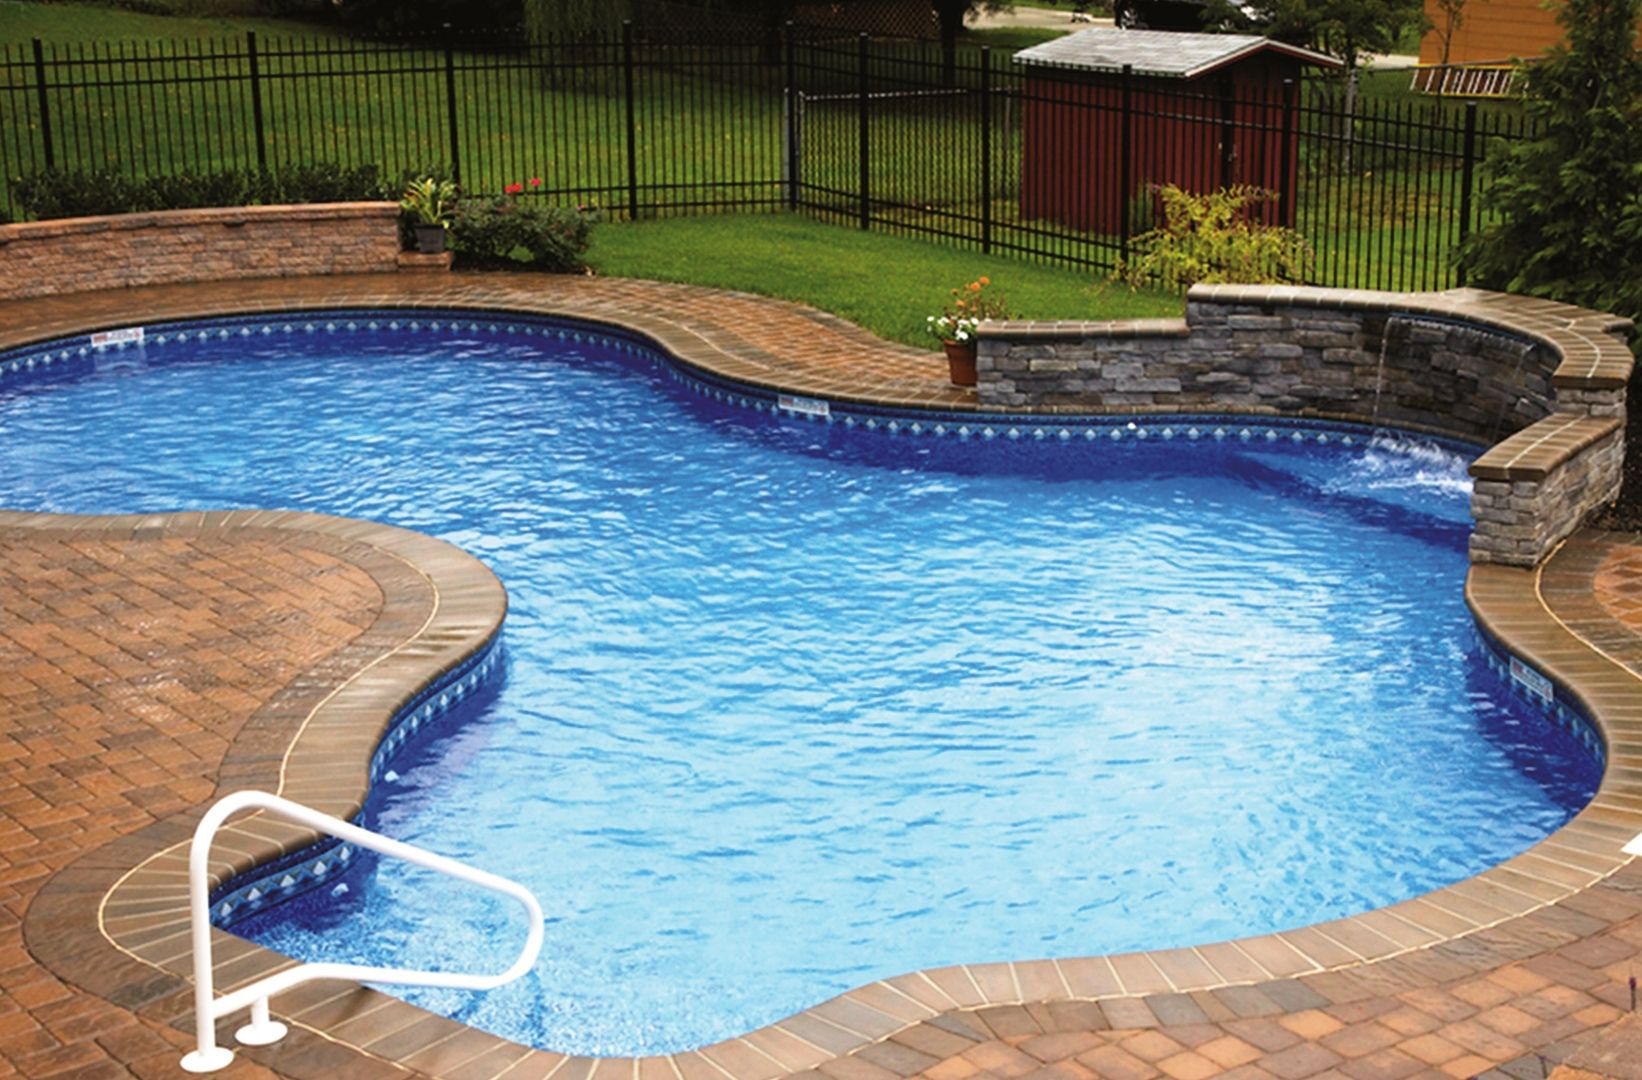 Back yard swimming pool ideas swimming pool design for Poolside ideas